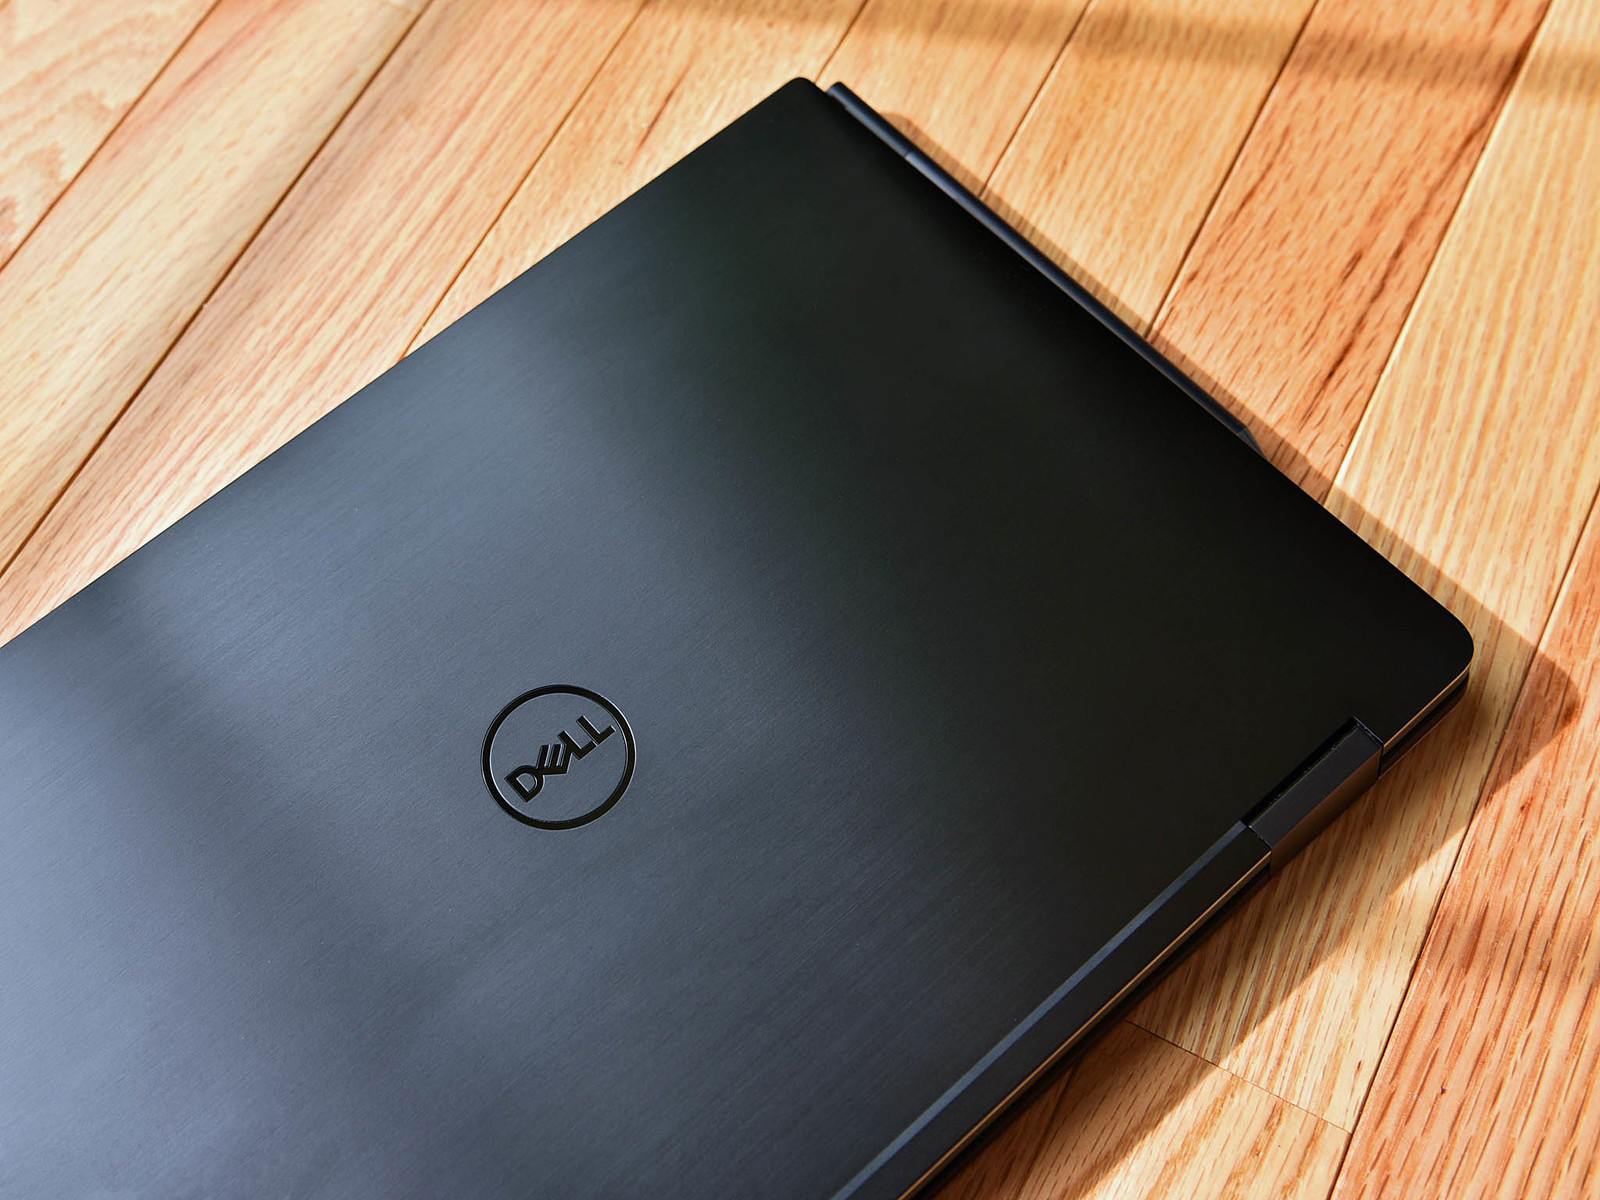 Dell XPS 15 9575 (2-in-1) 15.6